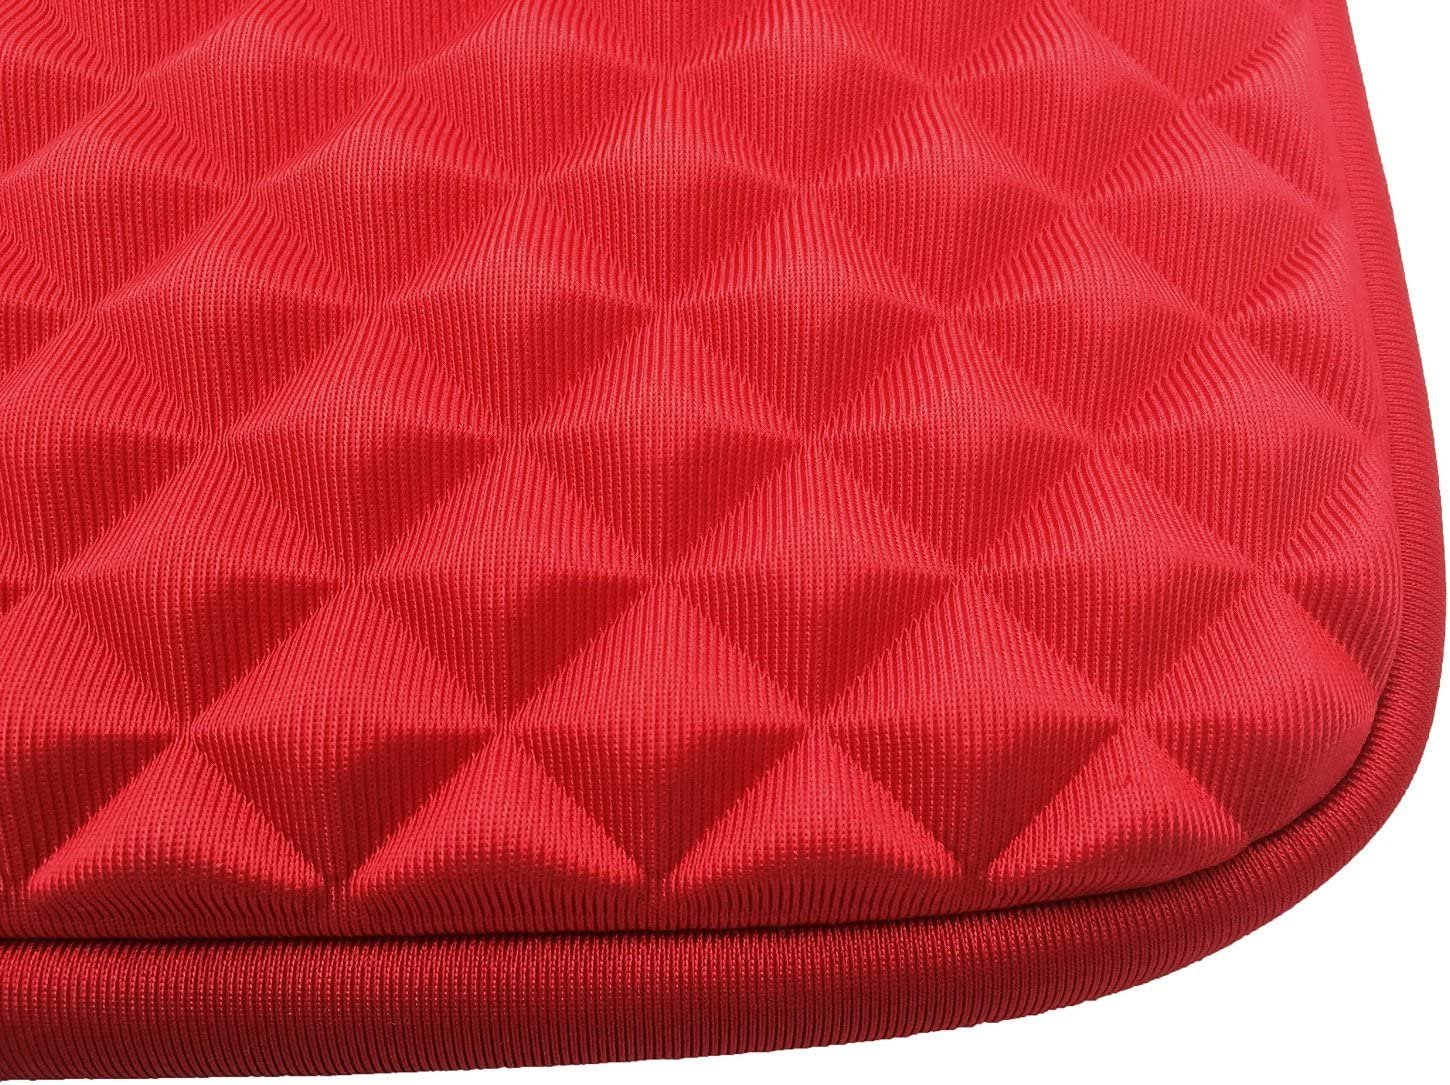 For Toshiba AZ-Cover 13.3-Inch Case Simplicity /& Stylish Diamond Foam Shock-Resistant Neoprene Sleeve Satellite Click 2 2-in-1 13.3 Touch-Screen Laptop Red